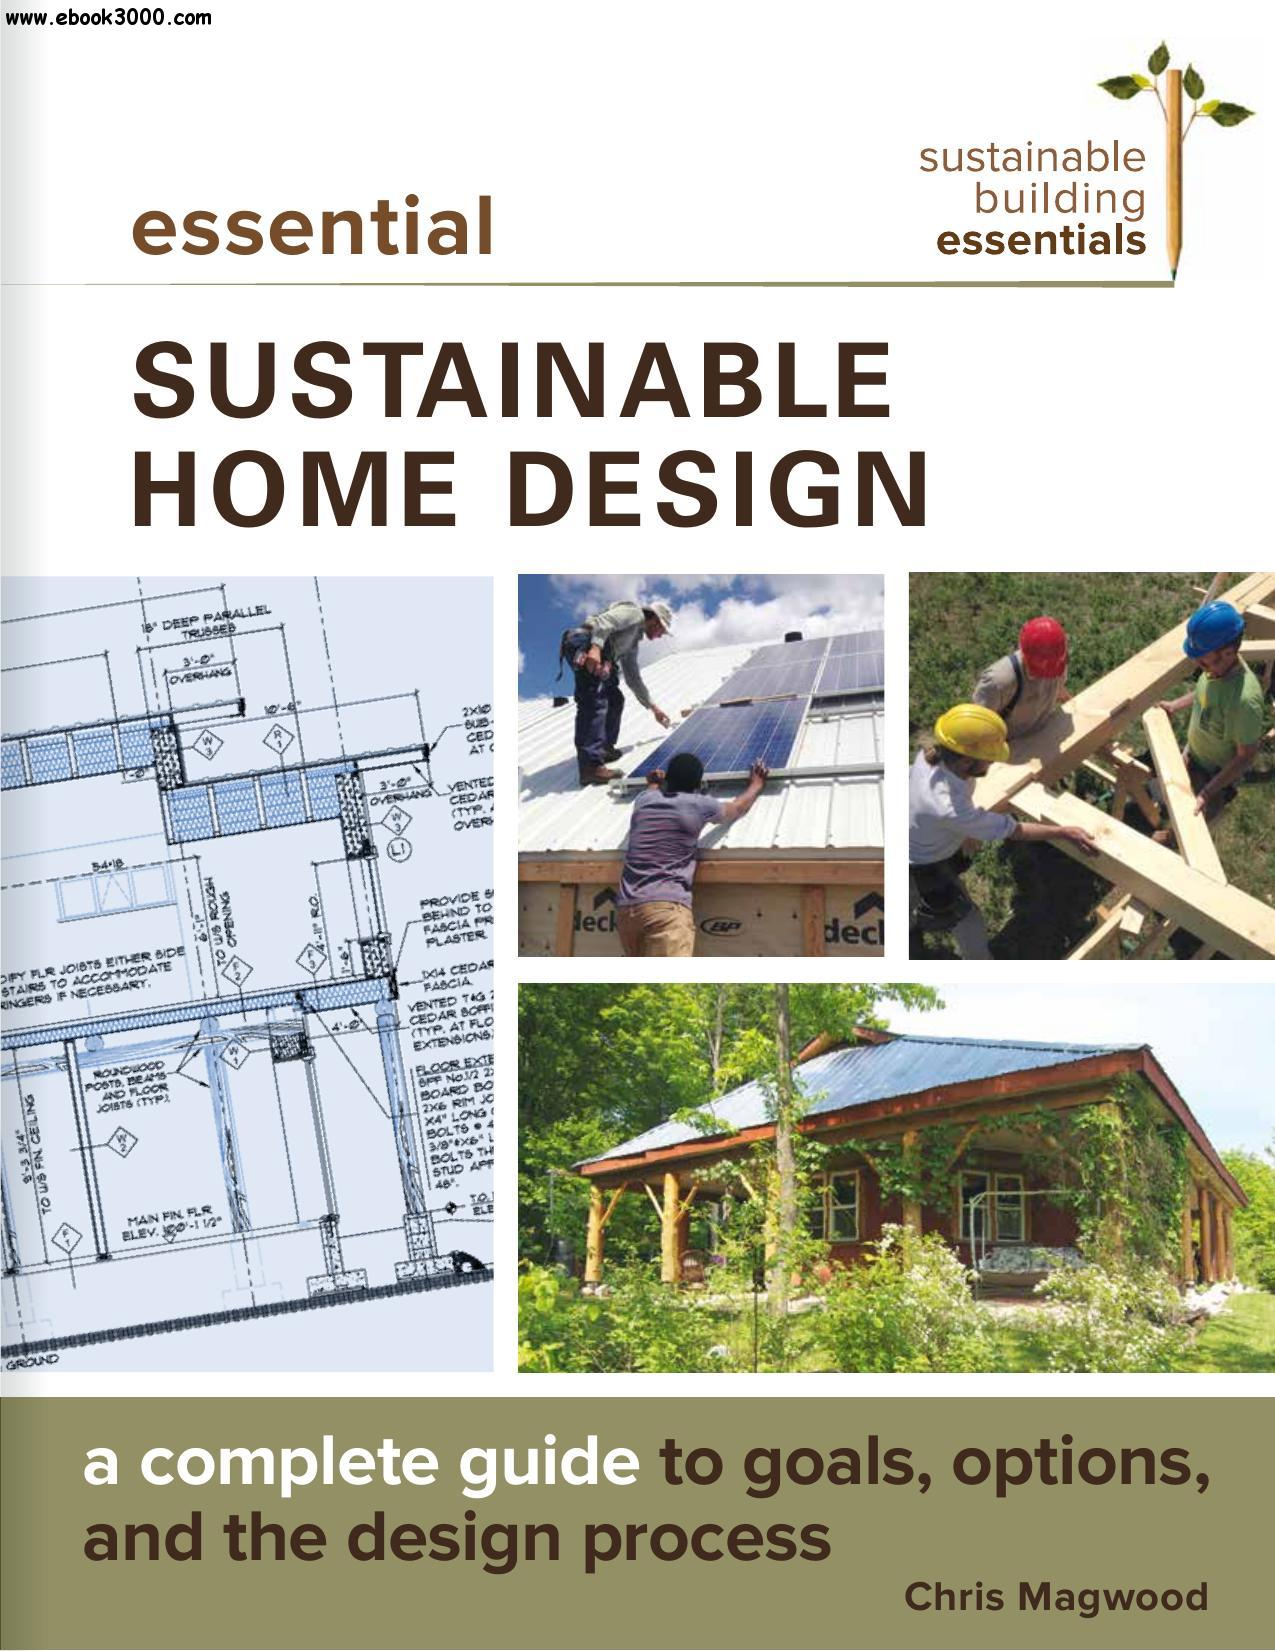 Essential Sustainable Home Design: A Complete Guide To